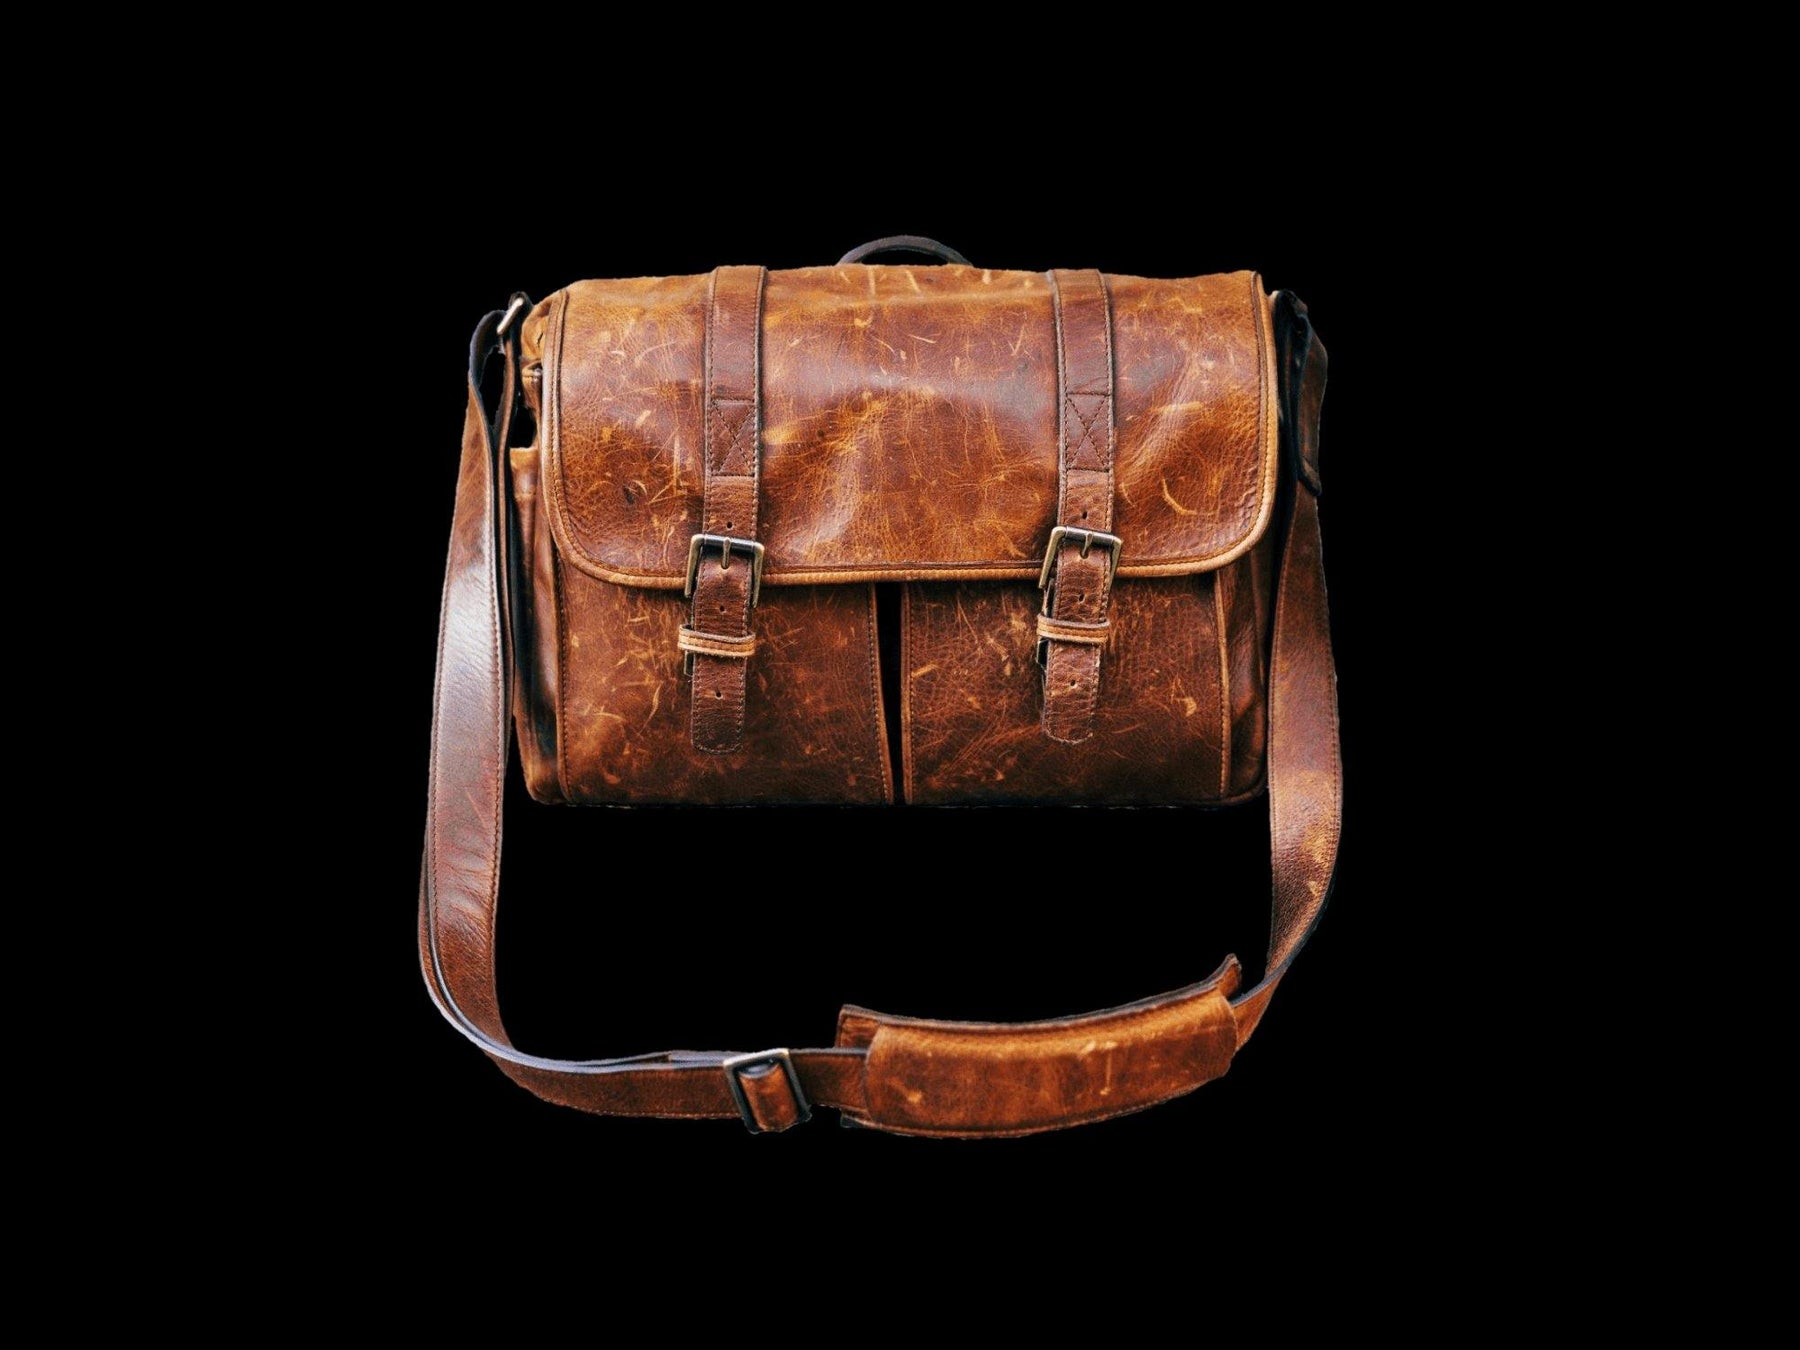 How to Care for a Leather Briefcase: 5 Simple Tips | Burkley Case